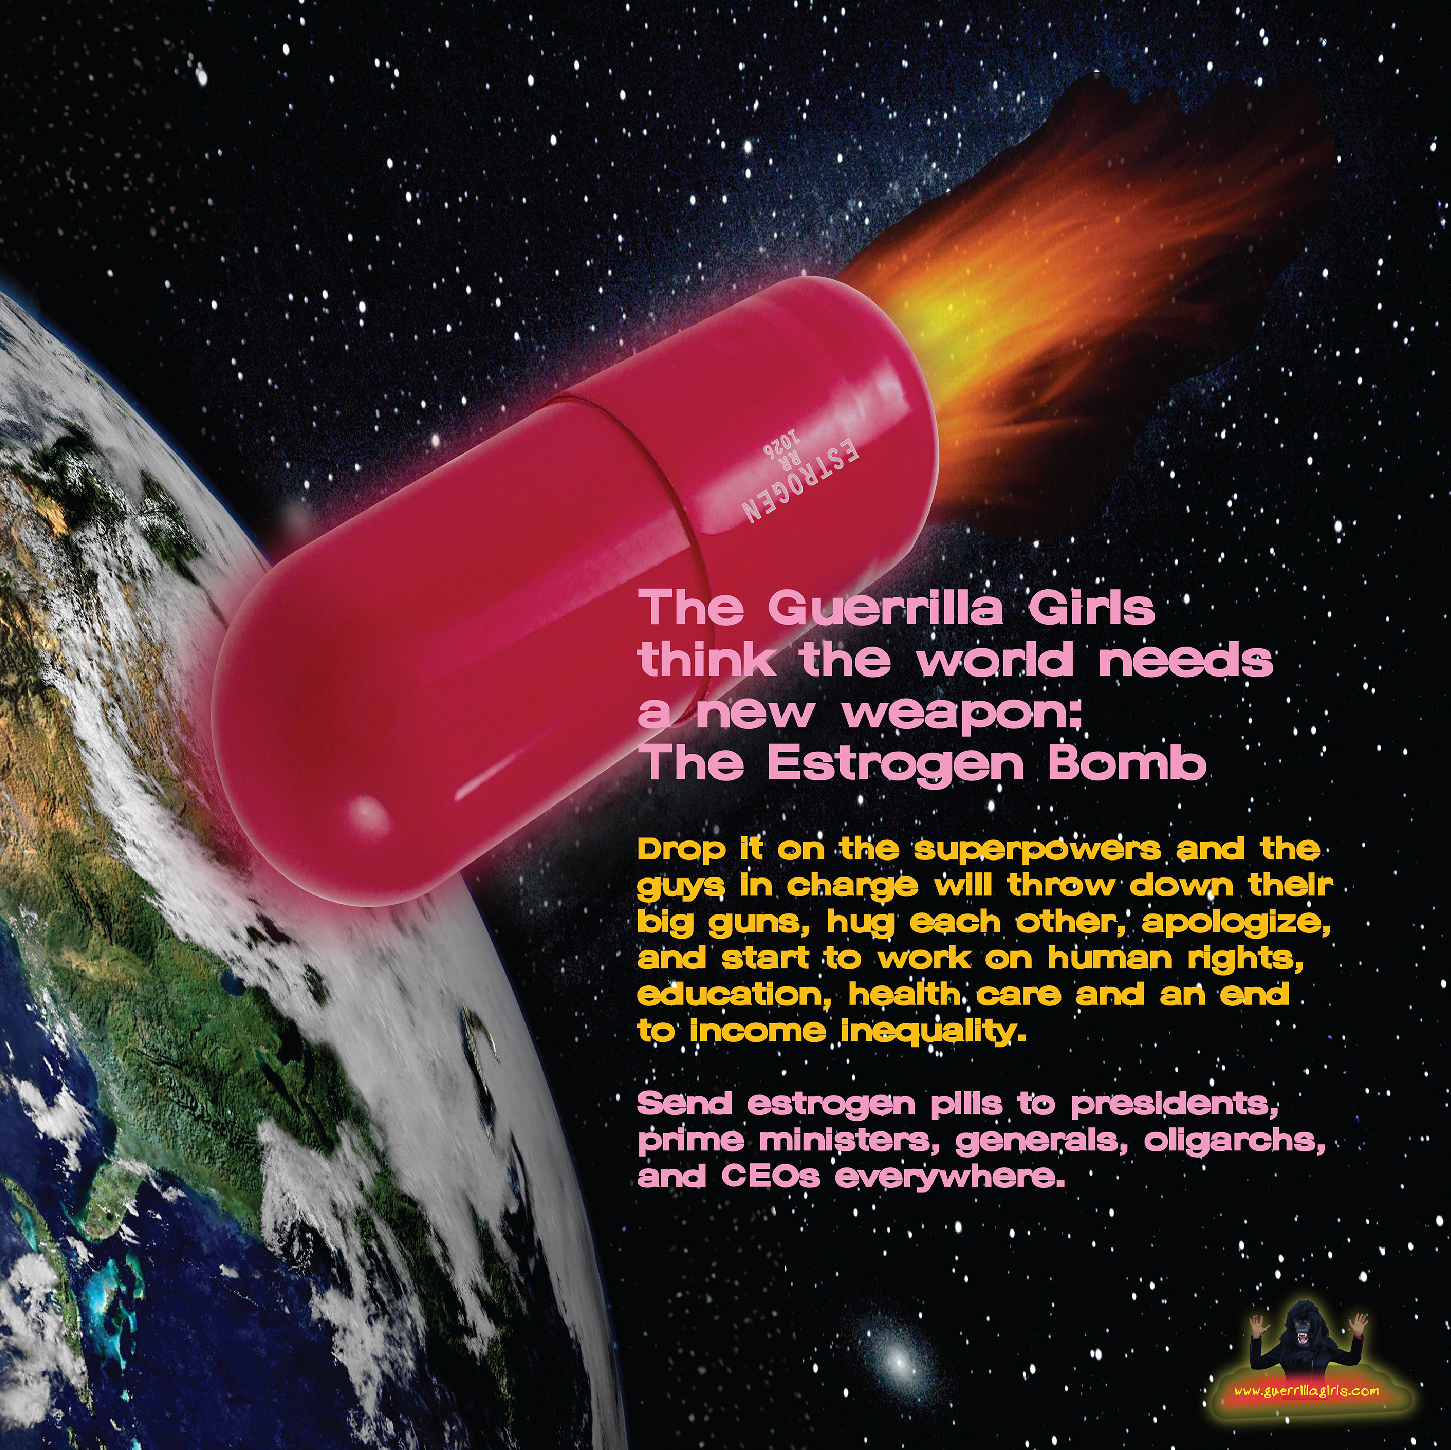 Caption: Estrogen Bomb poster, Credit: Guerrilla Girls